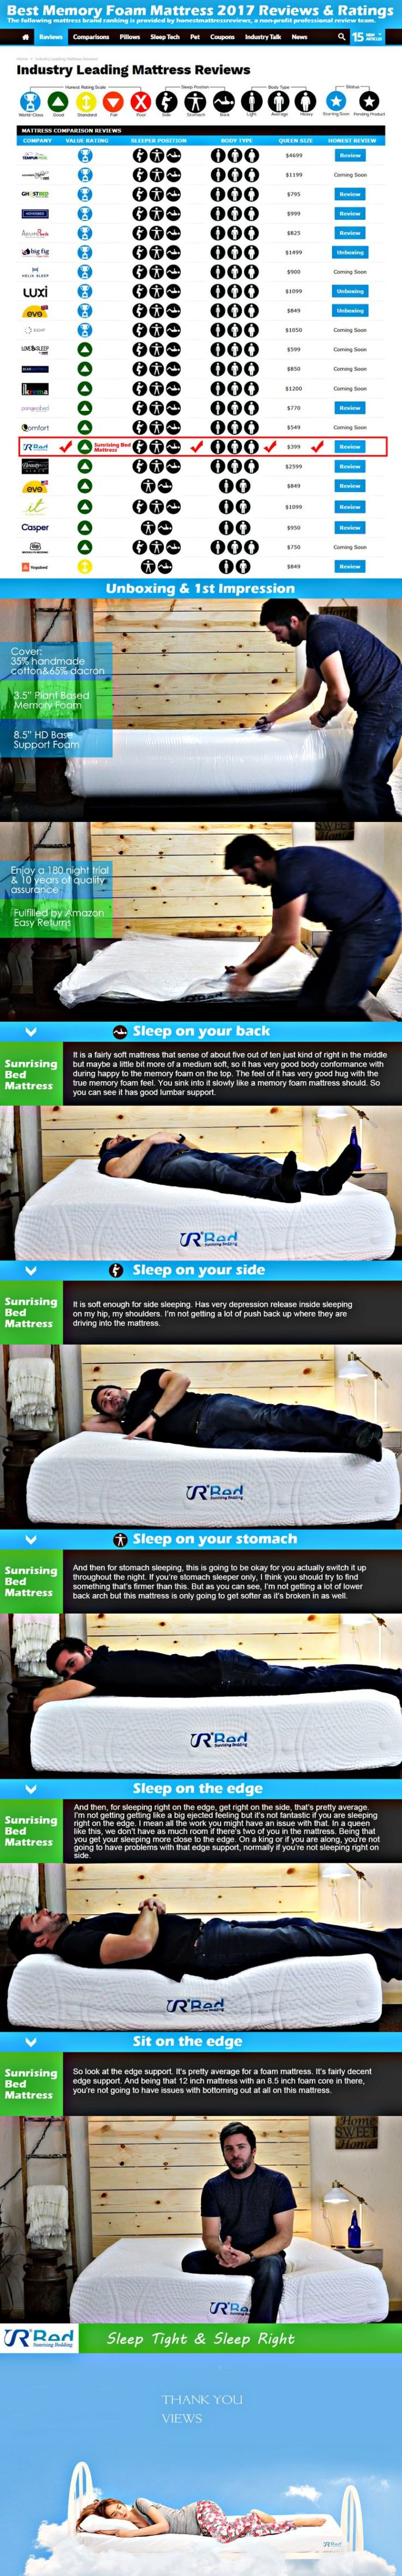 Quotes About Life Best Memory Foam Mattress 2017 Reviews Ratings Sleep Bed Mattress